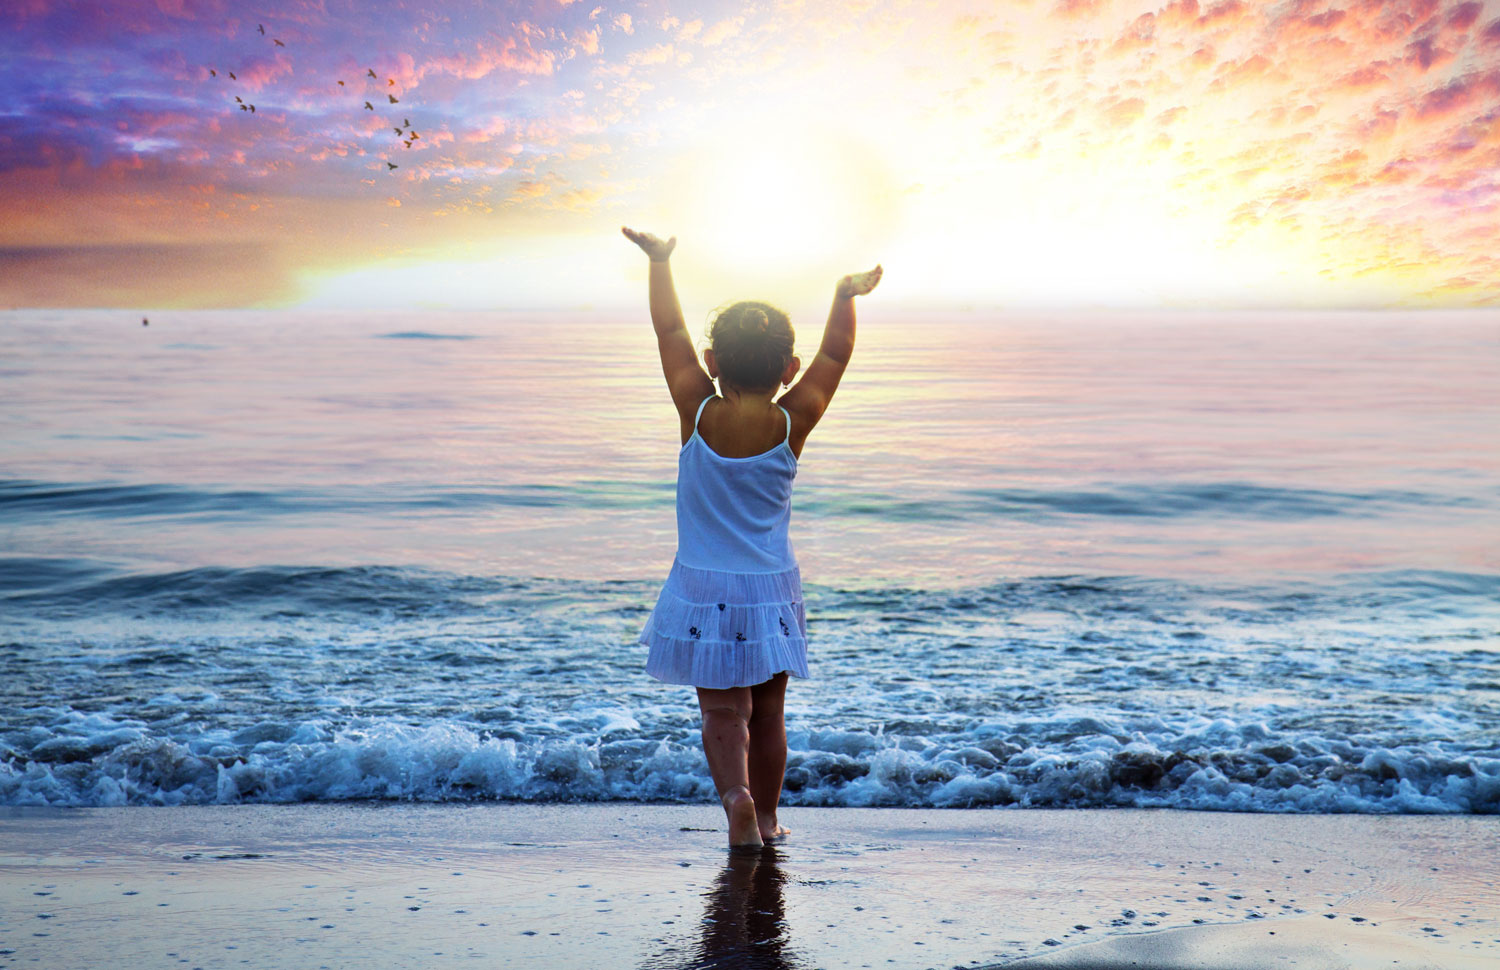 janette - little girl with hands raised at ocean.jpg